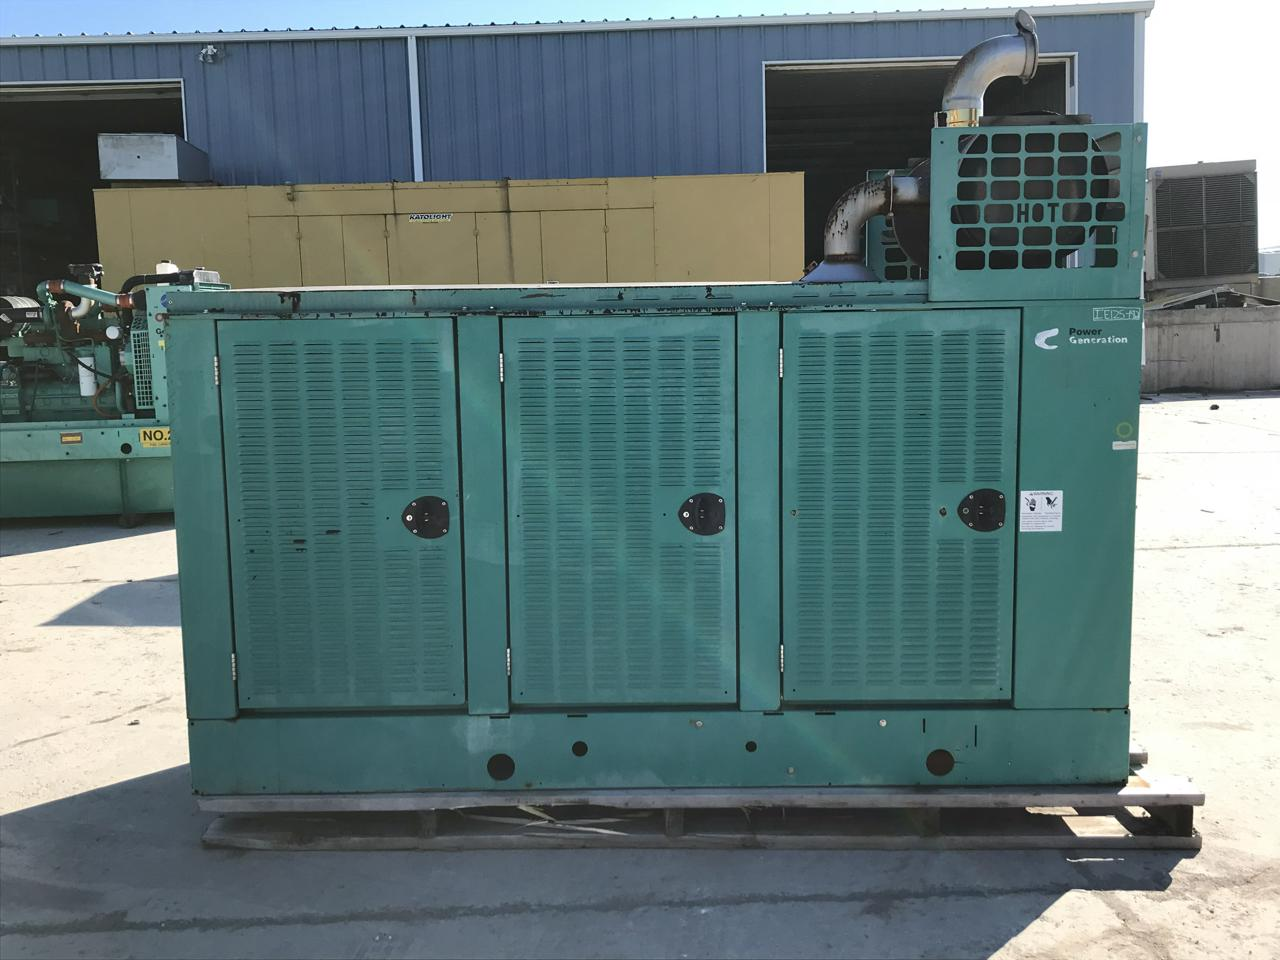 2000 kw kohler generator set sound att base fuel tank 2001 125 kw cummins onan generator 12 lead reconnectable weather proof enclosure cheapraybanclubmaster Image collections